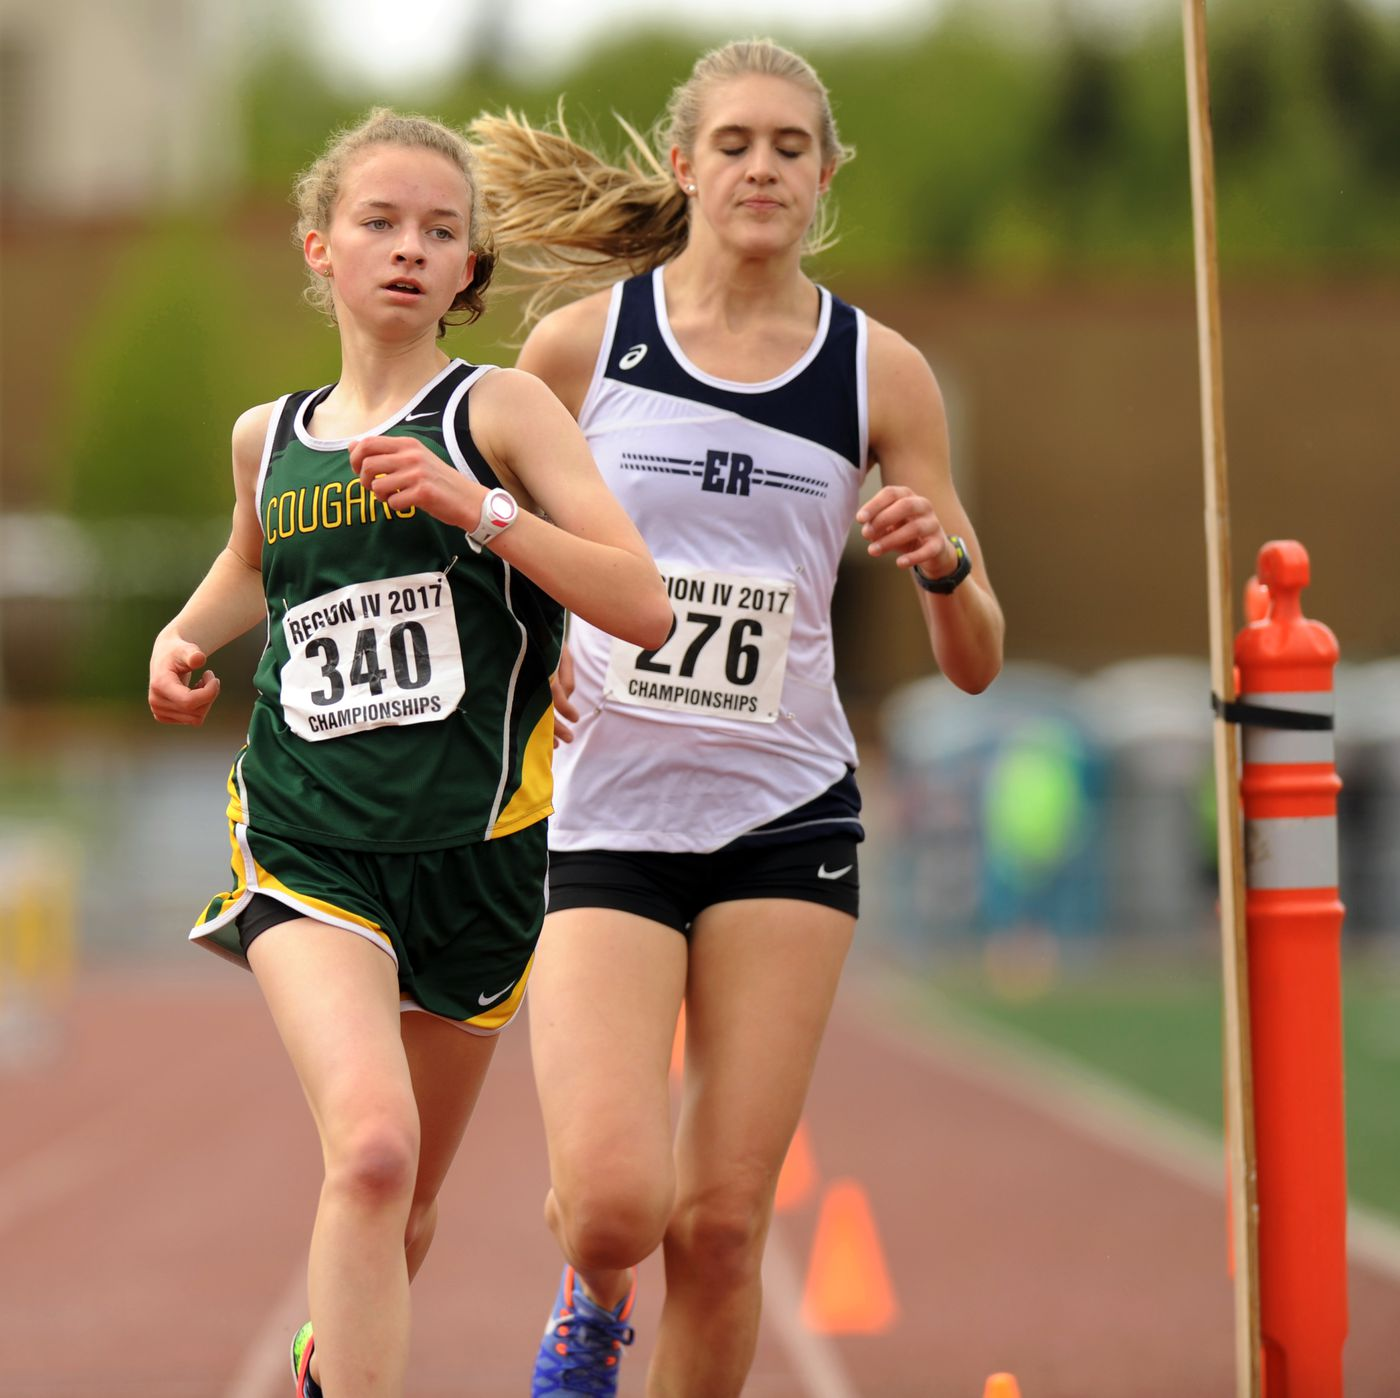 Grace Fahrney of Service, left, edges past Peyton Young of Eagle River with two laps to go before opening a gap to win the girls 3,200-meterrace. (Erik Hill / Alaska Dispatch News)